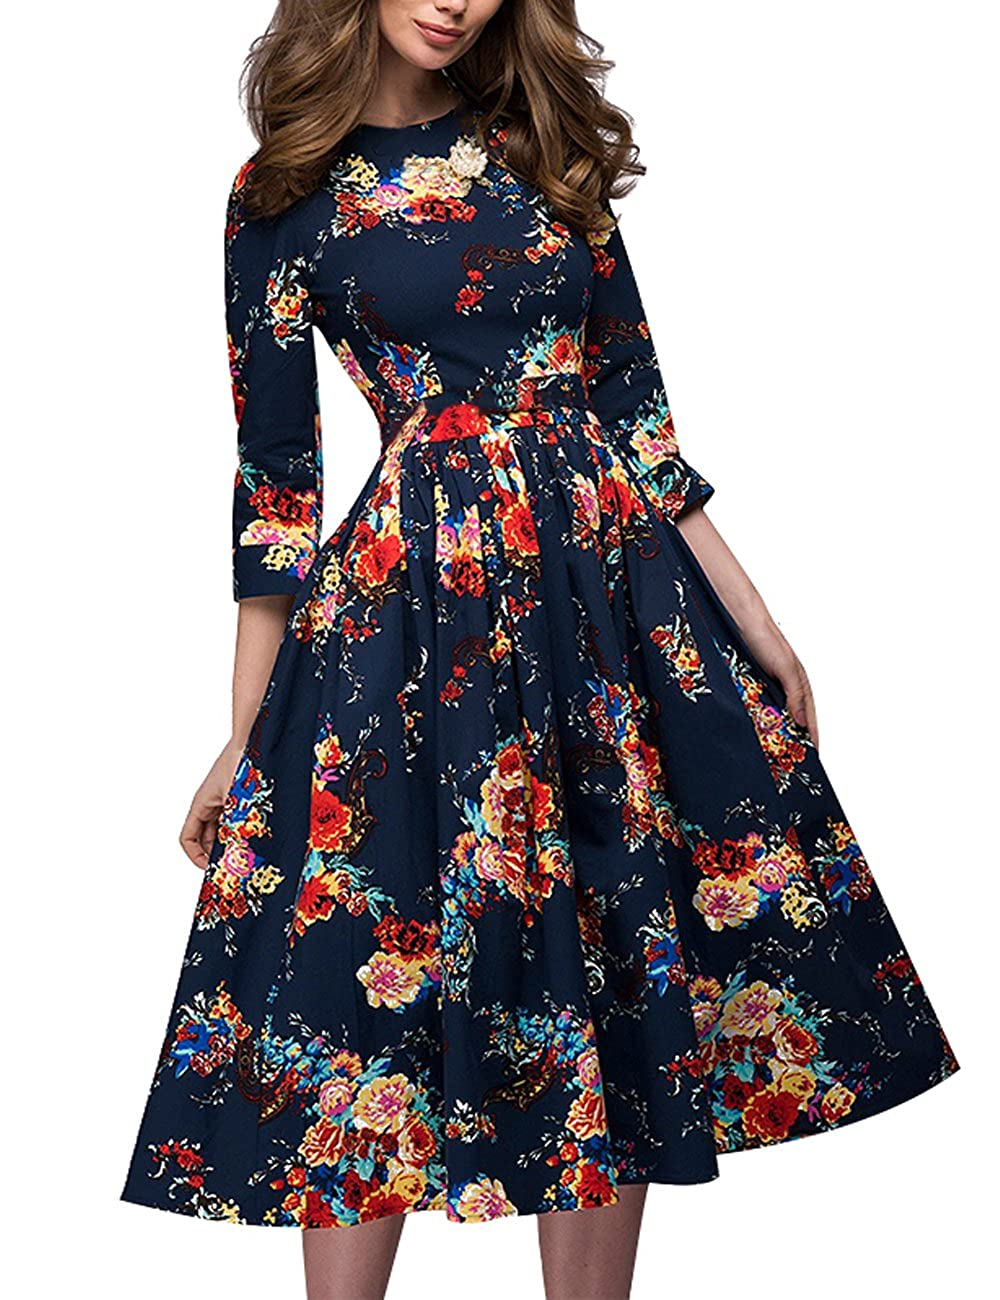 972e19f7ed65 O Neck,Three Quarter Sleeve,A line,Mid Length Dress,Floral Print Suitable  for Spring,Autumn and Winter Season Occasion:Party,Office,Cocktail,Work,Holiday  ...